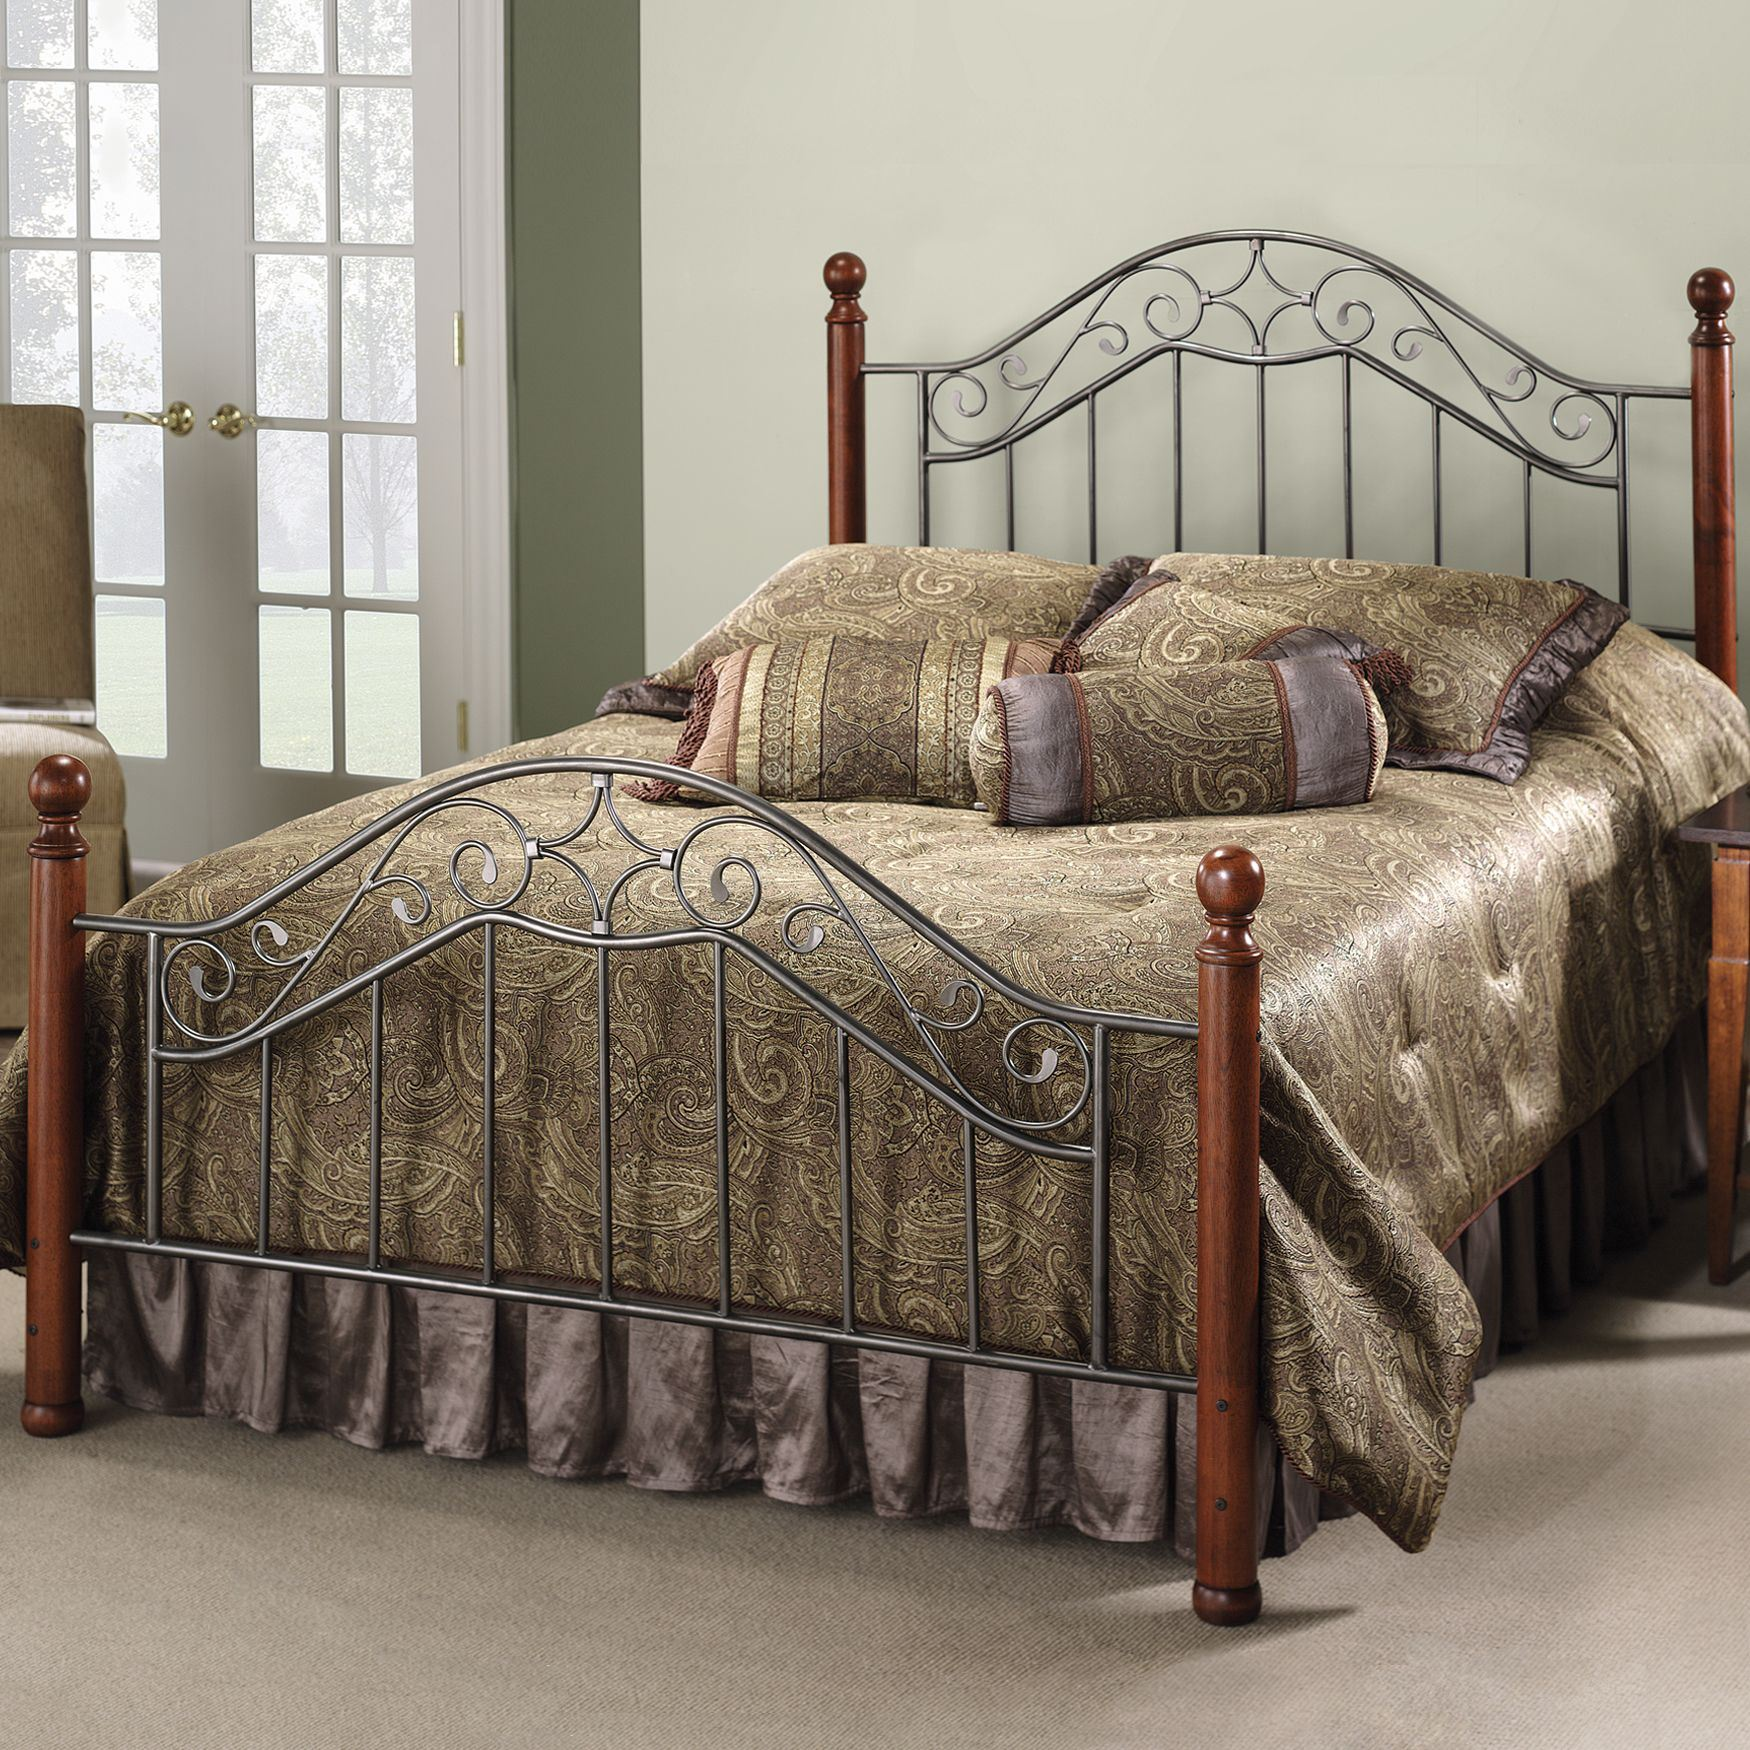 Hillsdale Martino Bed with Bed Frame,